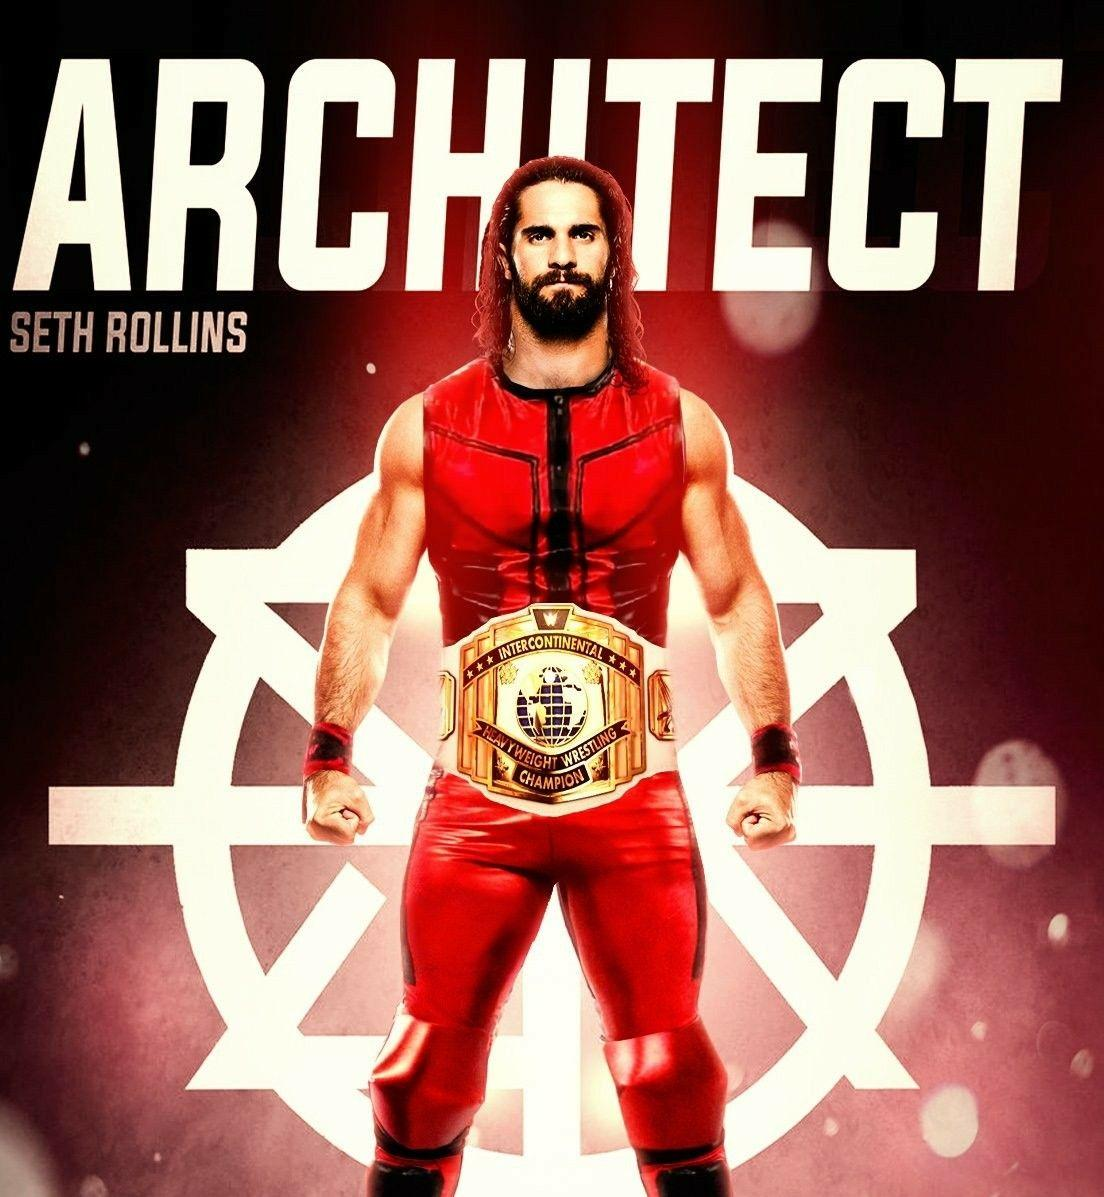 Seth Rollins Universal Champion Wallpapers Wallpaper Cave